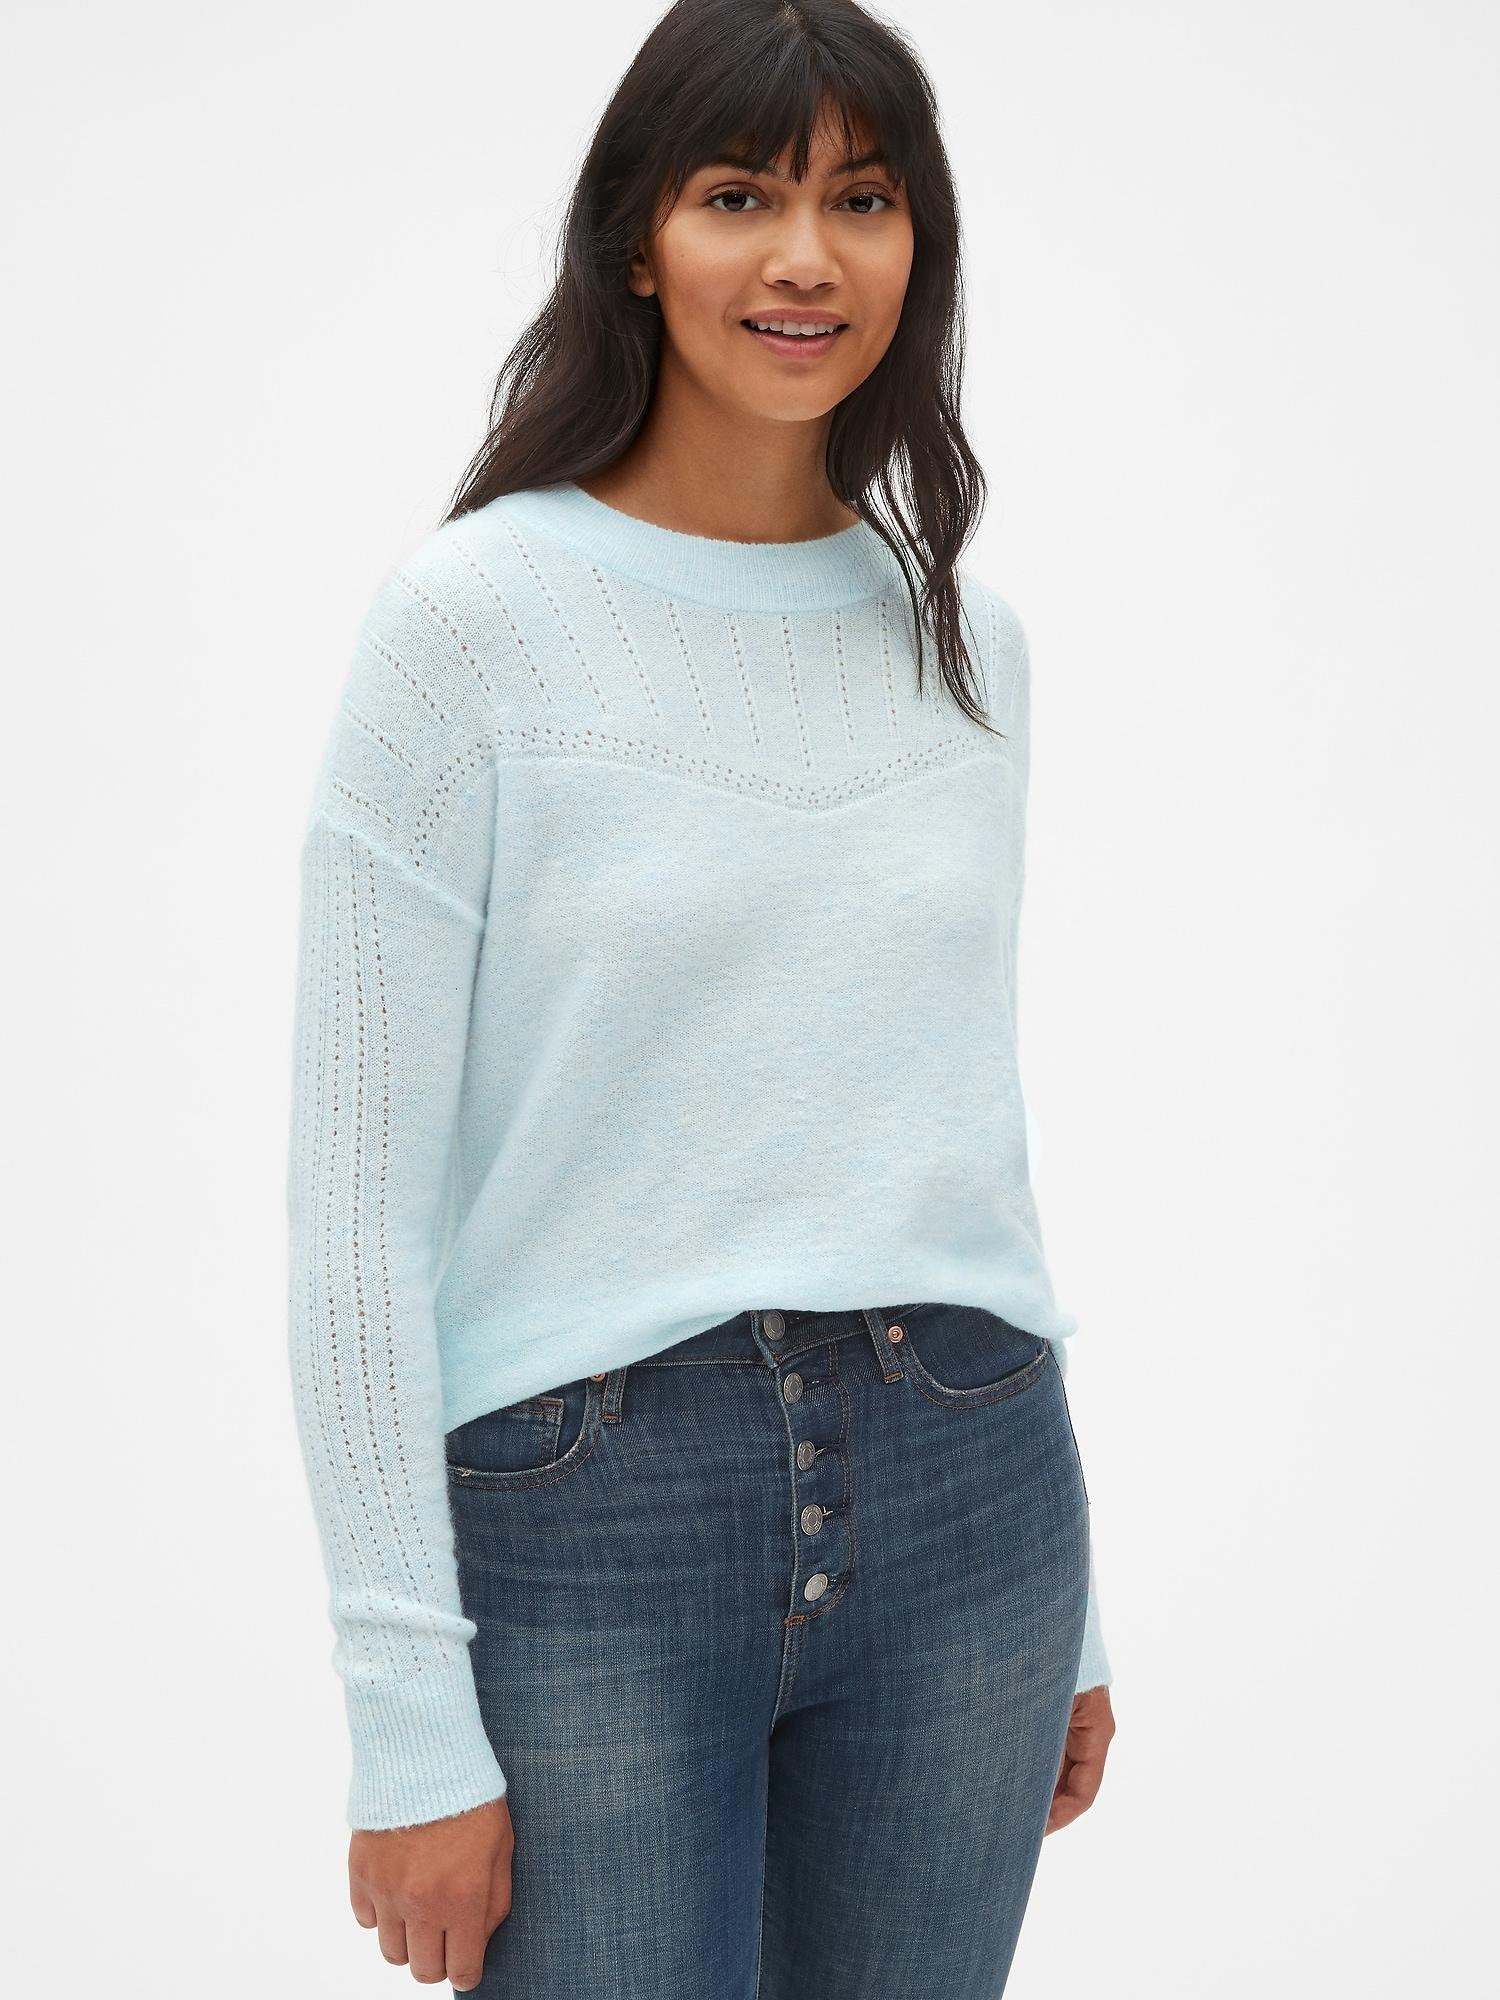 4a41ab08c Lyst - Gap Lacy Pointelle Crewneck Pullover Sweater in Blue